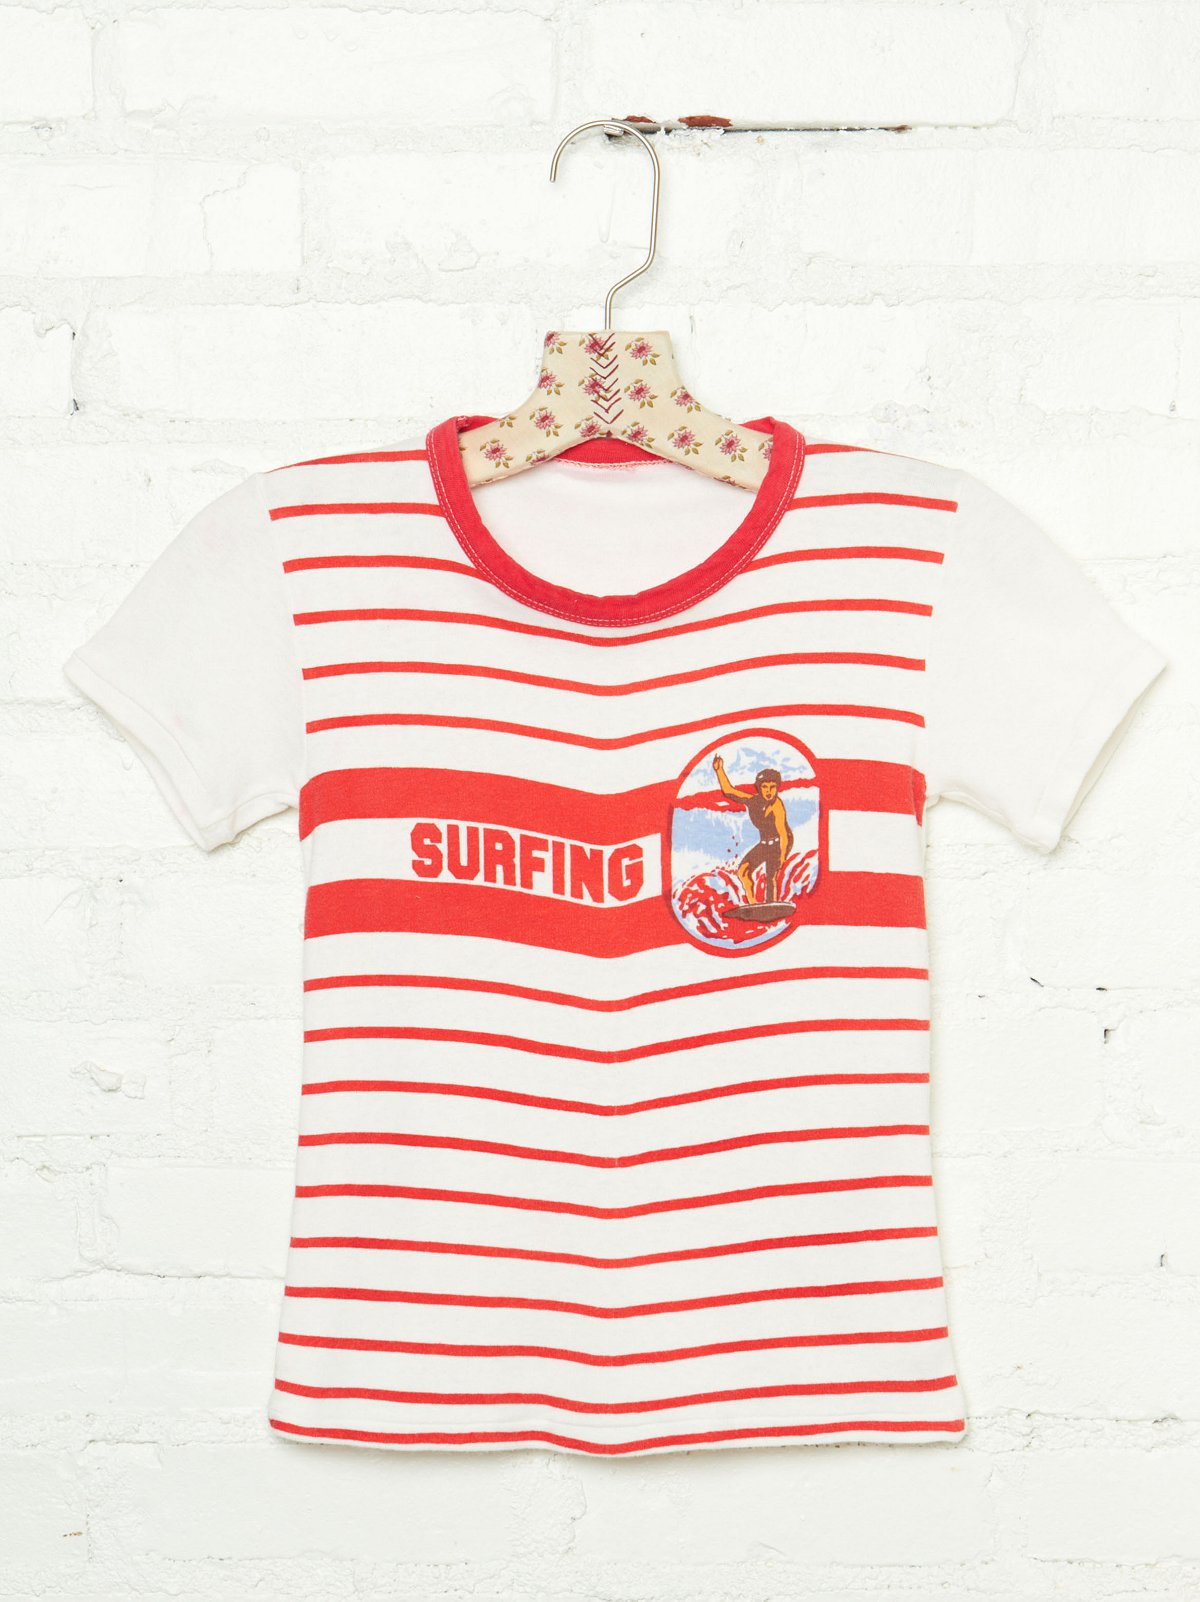 Vintage 1970s Surfing Striped Tee